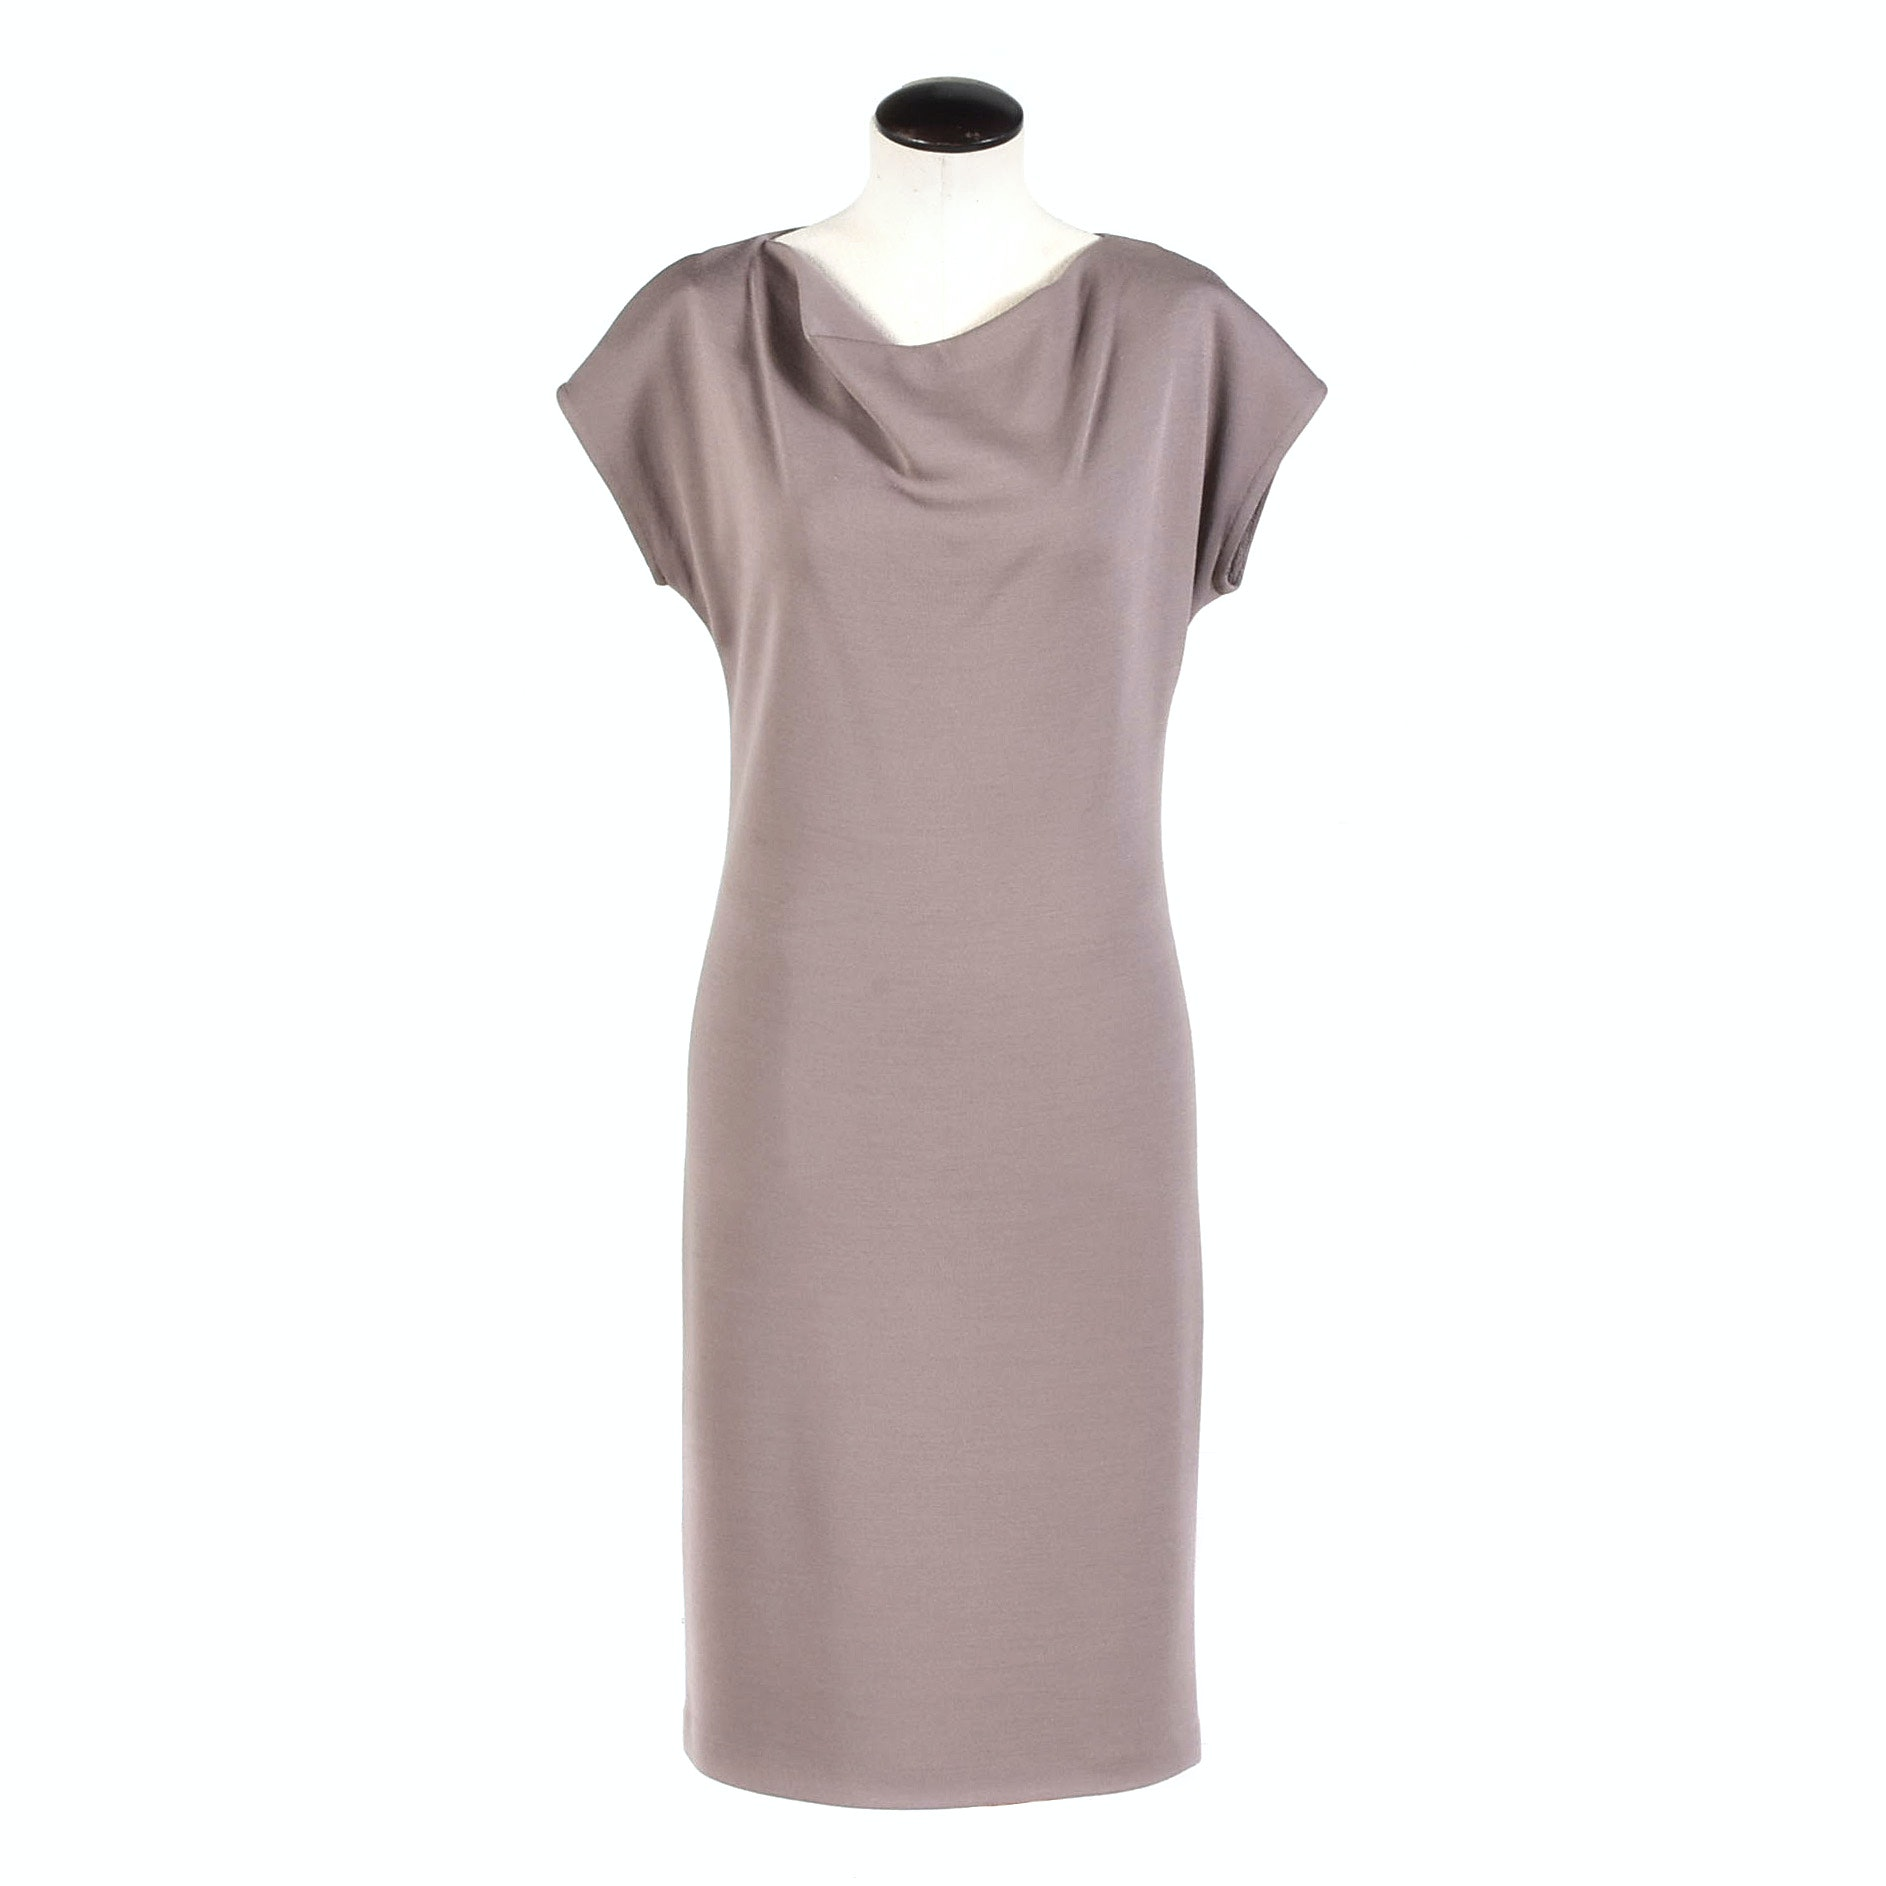 St. John Taupe Knit Sheath Dress with Draped Neckline